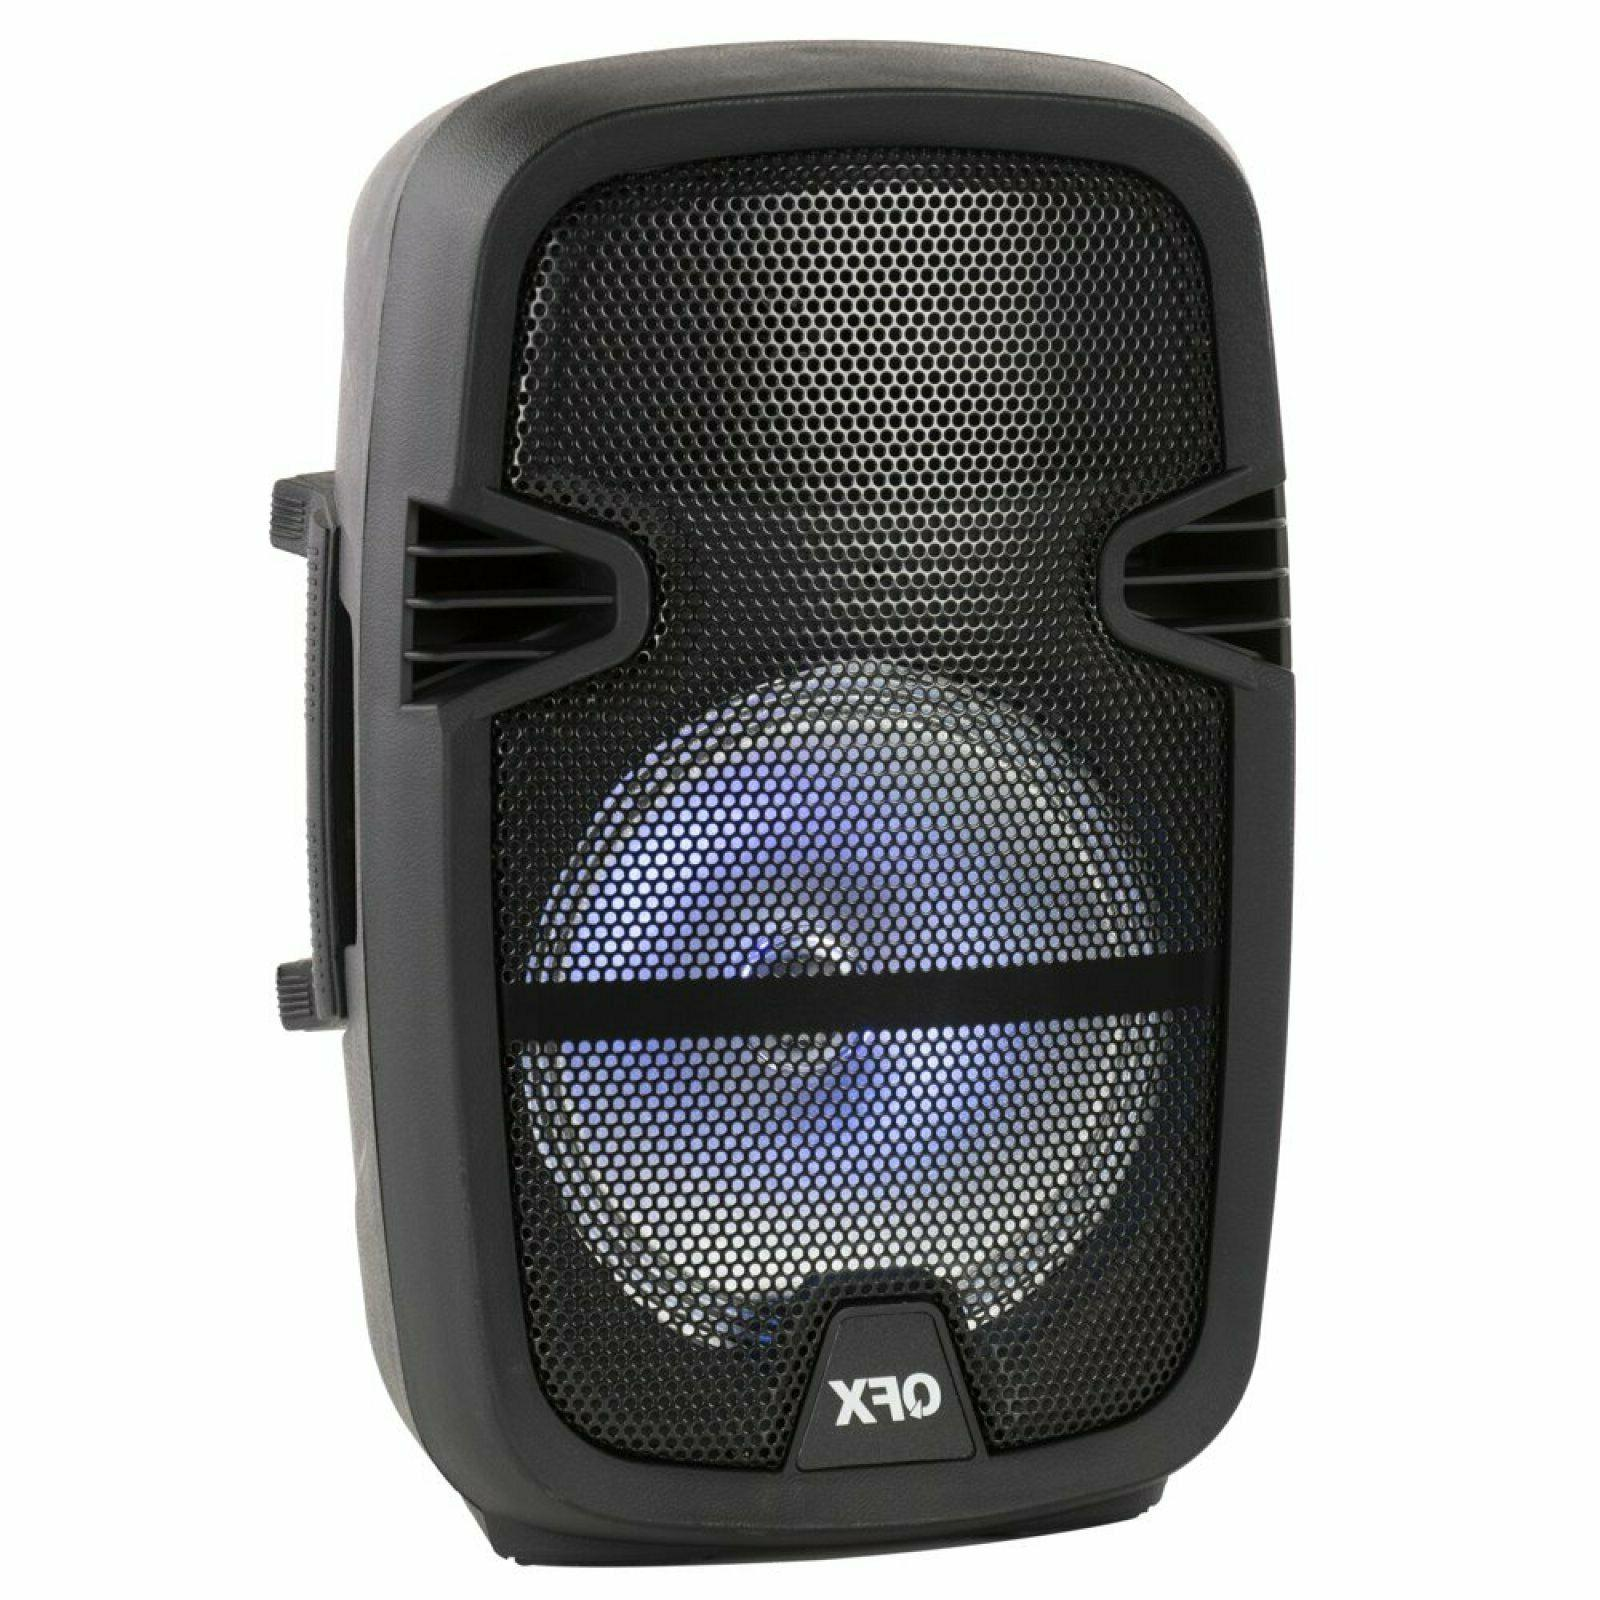 Portable Bluetooth Speaker System with Mic and Remote Studio